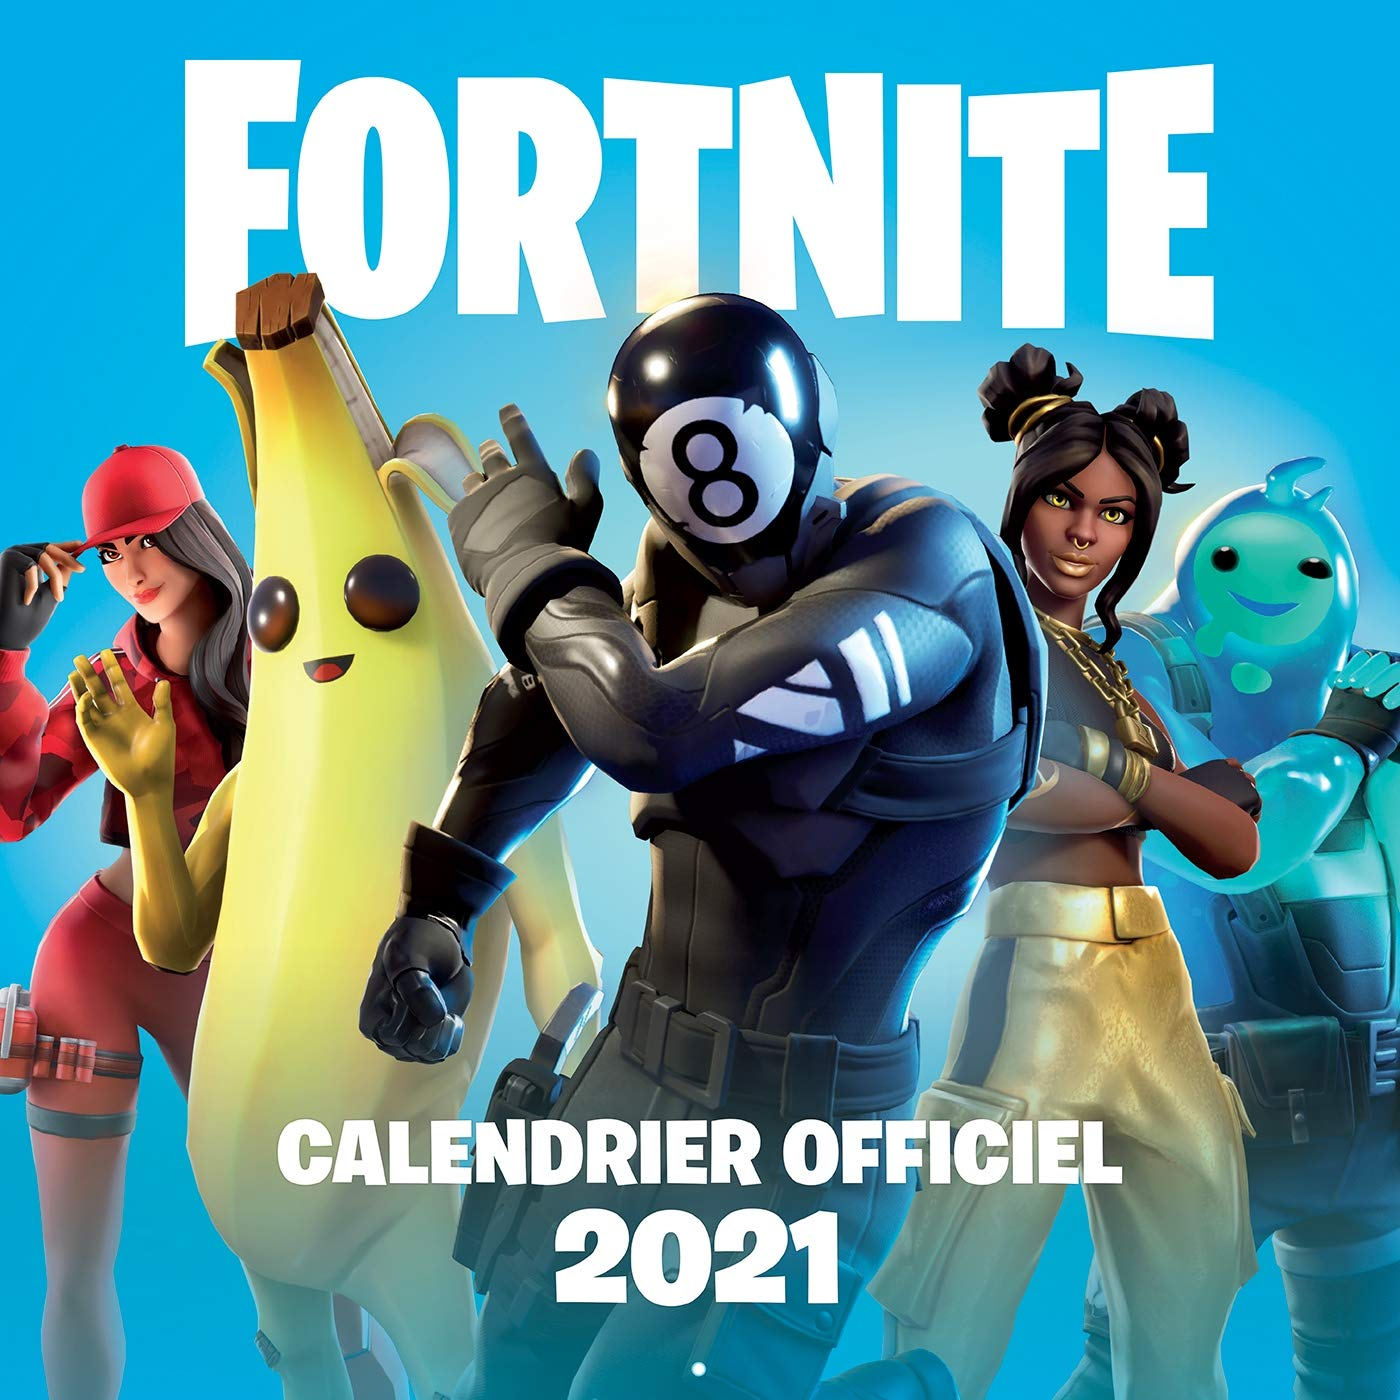 Fortnite Calendrier 2021: 9782016291399: Amazon.com: Books